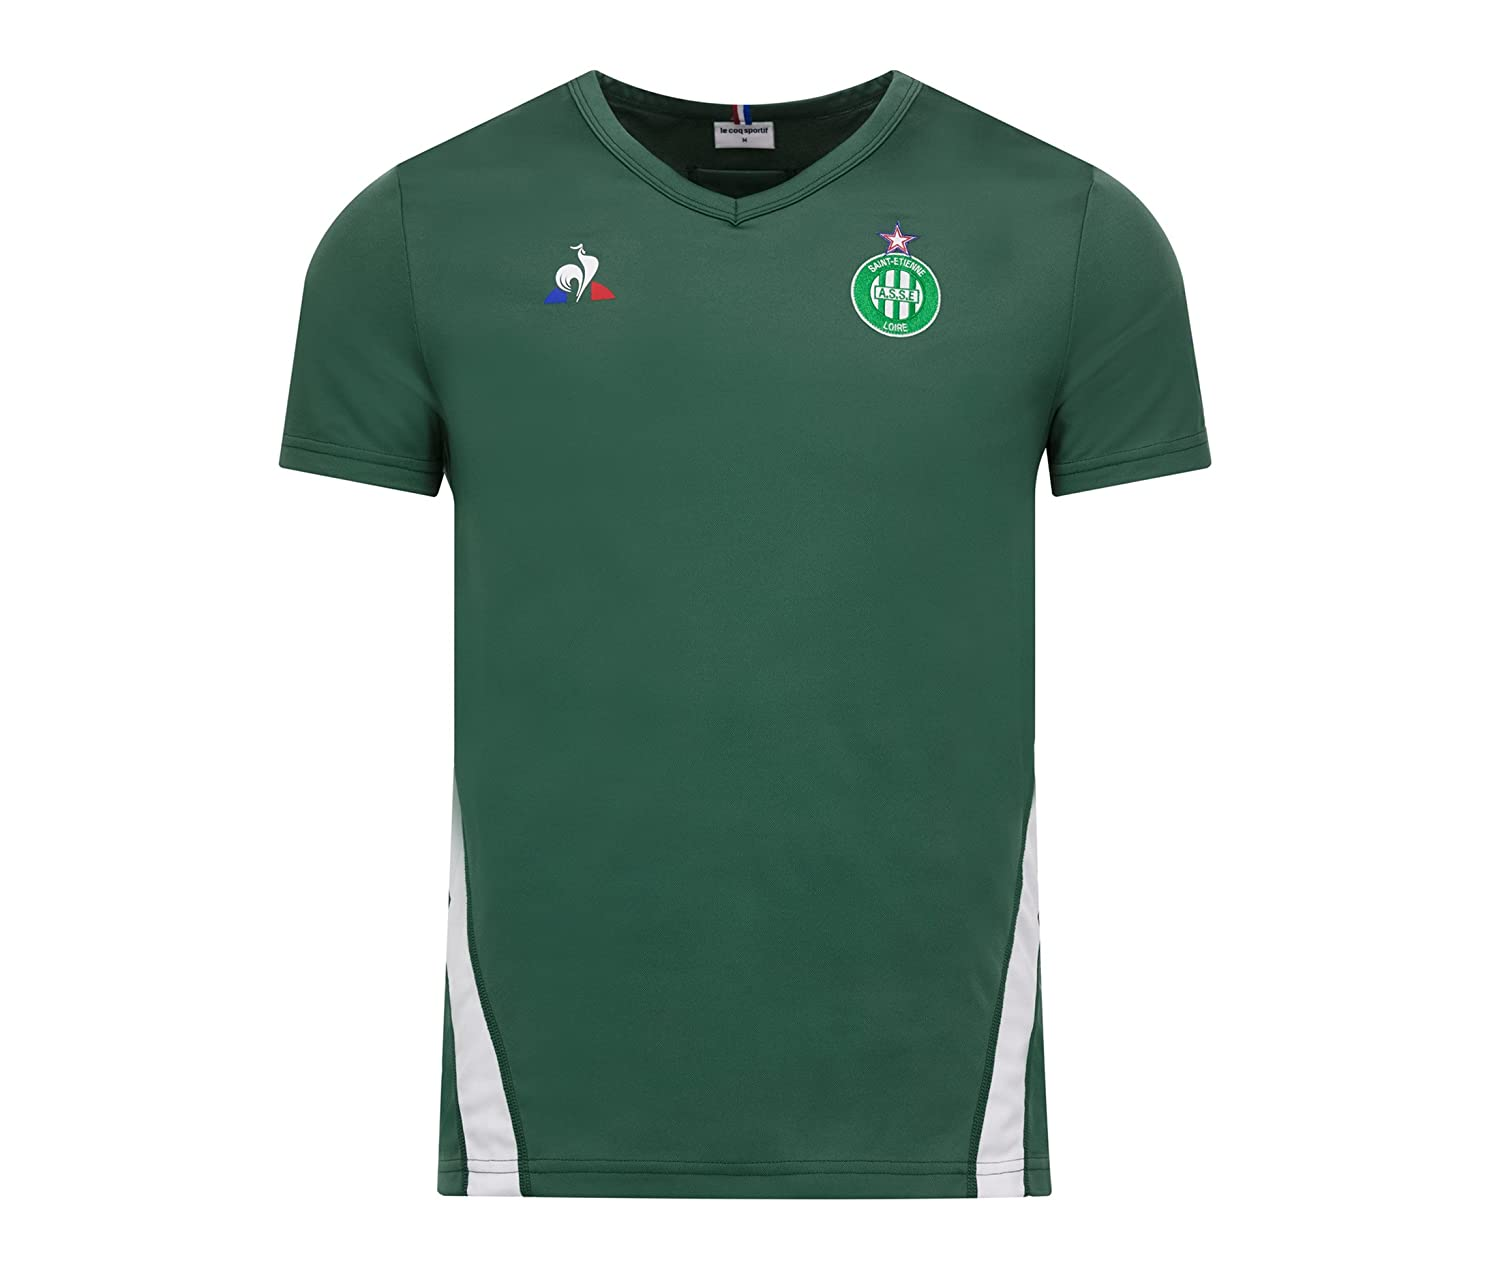 d3a1a584be82 Amazon.com   Le Coq Sportif 2018-2019 St Etienne Training Football Soccer  T-Shirt Jersey (Green)   Sports   Outdoors